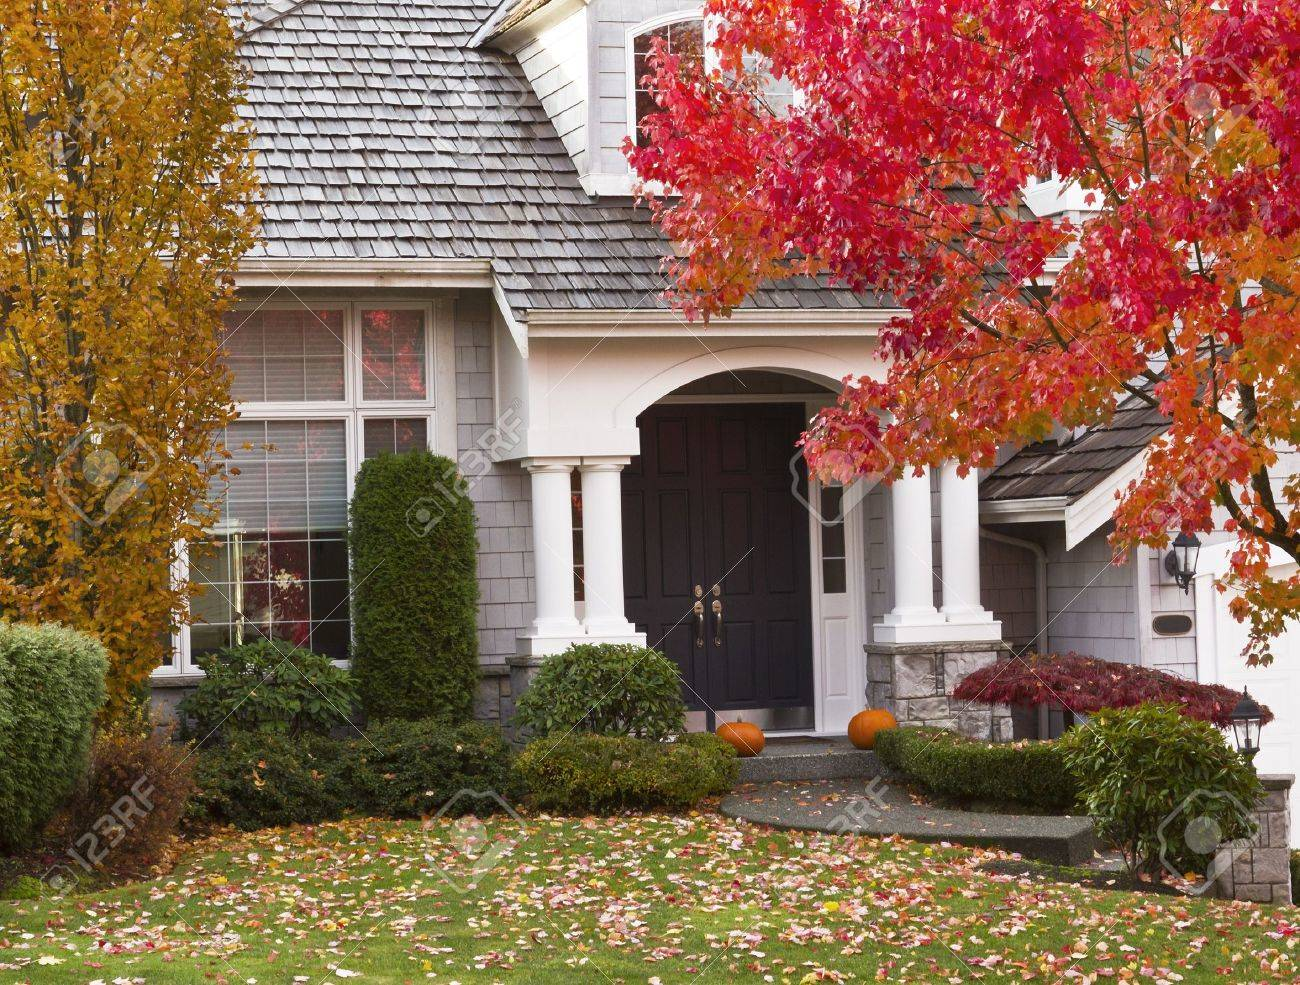 Modern home surrounded by autumn season with maple leaves on ground and trees turning bright colors Stock Photo - 15763471